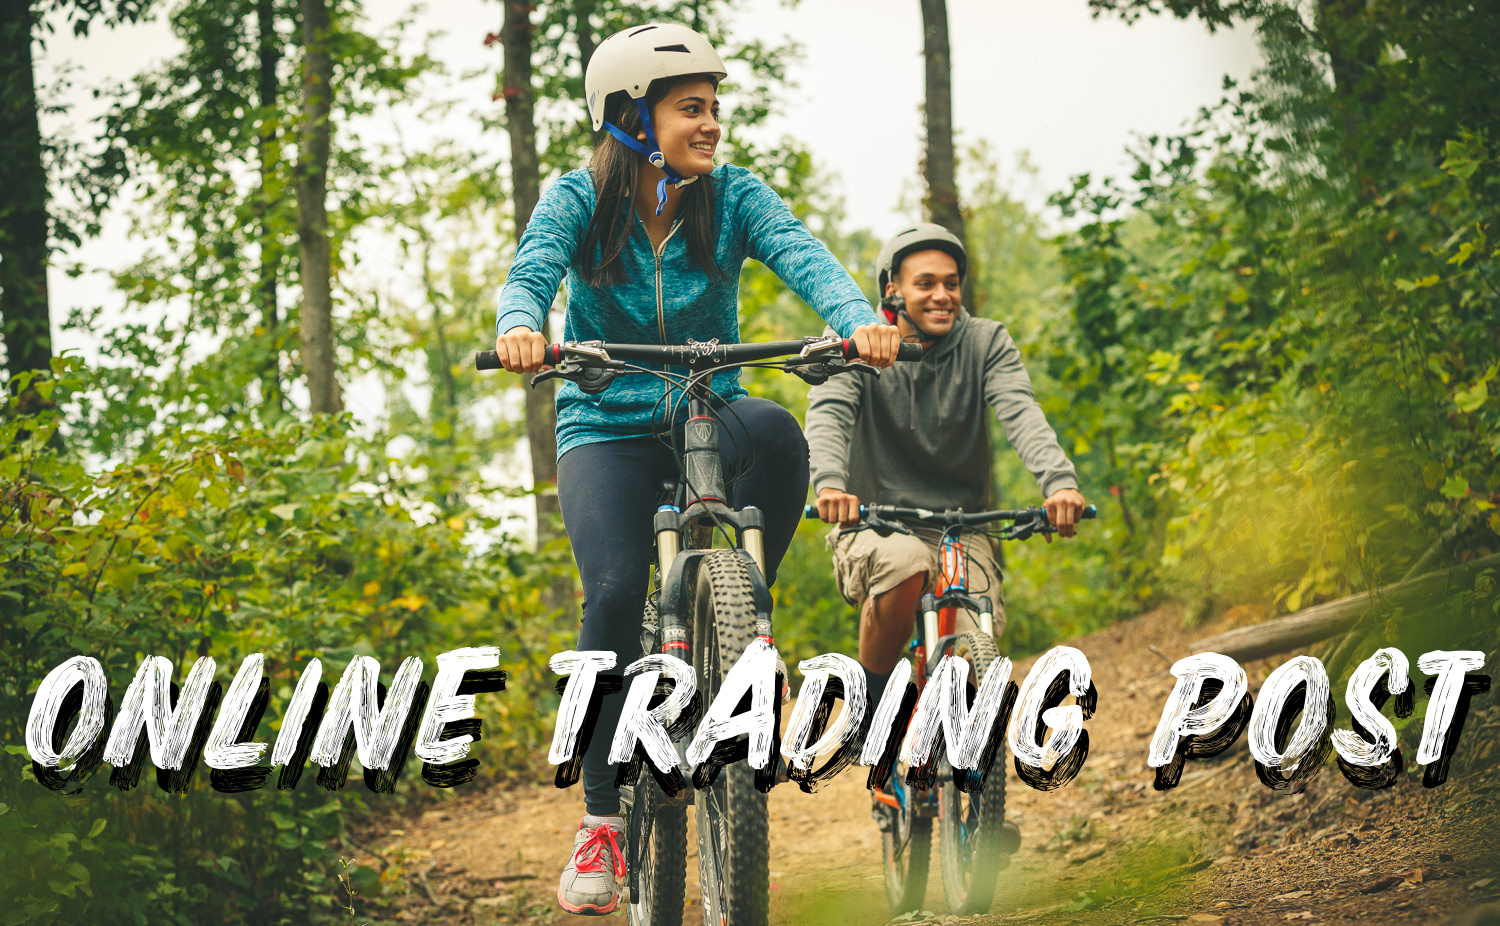 Online Trading Post